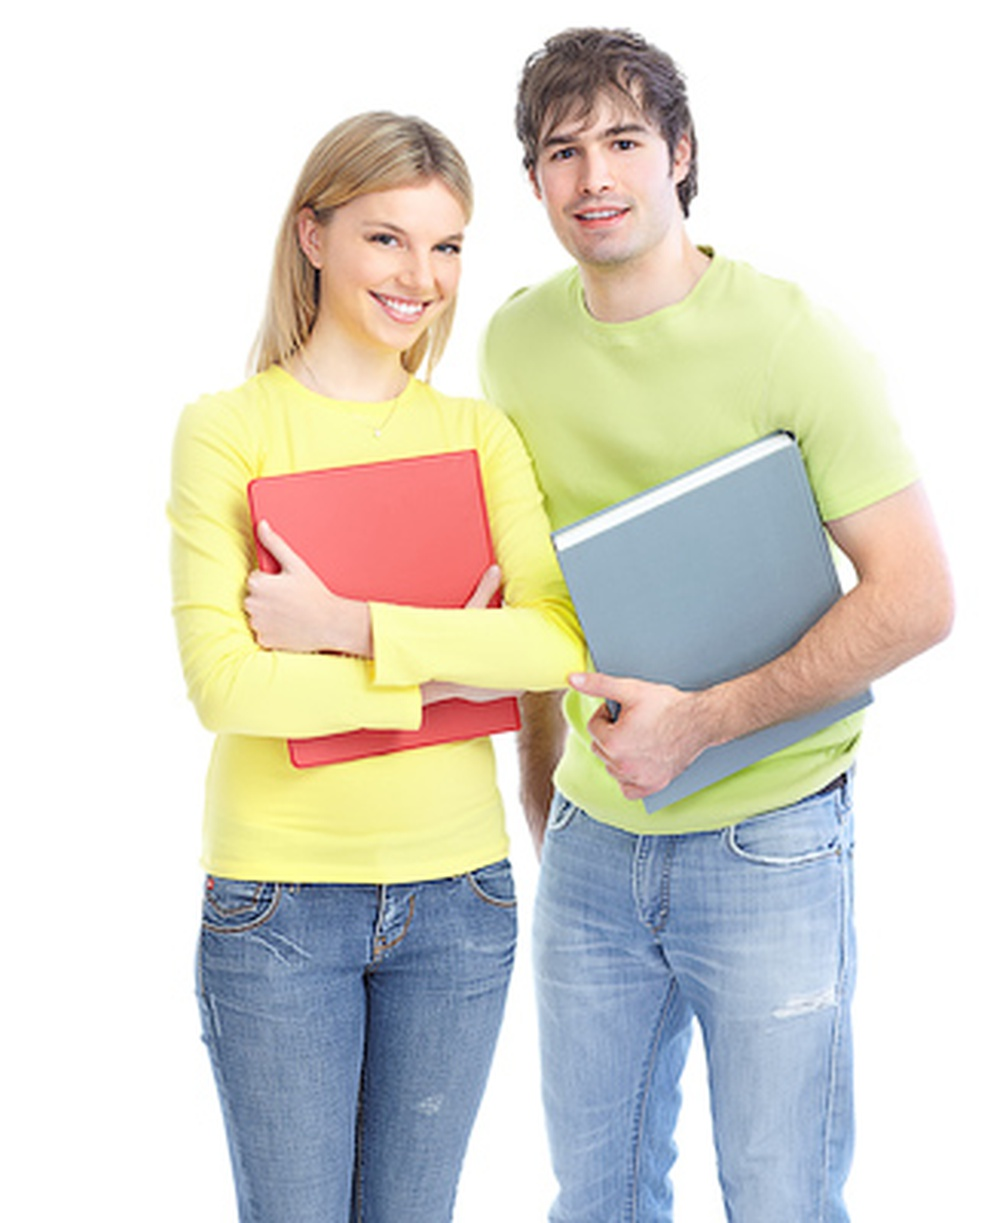 purchase a college paper Want to buy college essay but have no idea where to purchase it our writing service provides students with any writing aid you can buy college papers , buy college term paper, buy college essays, buy essay online, and the most important - buy cheap essays right here.